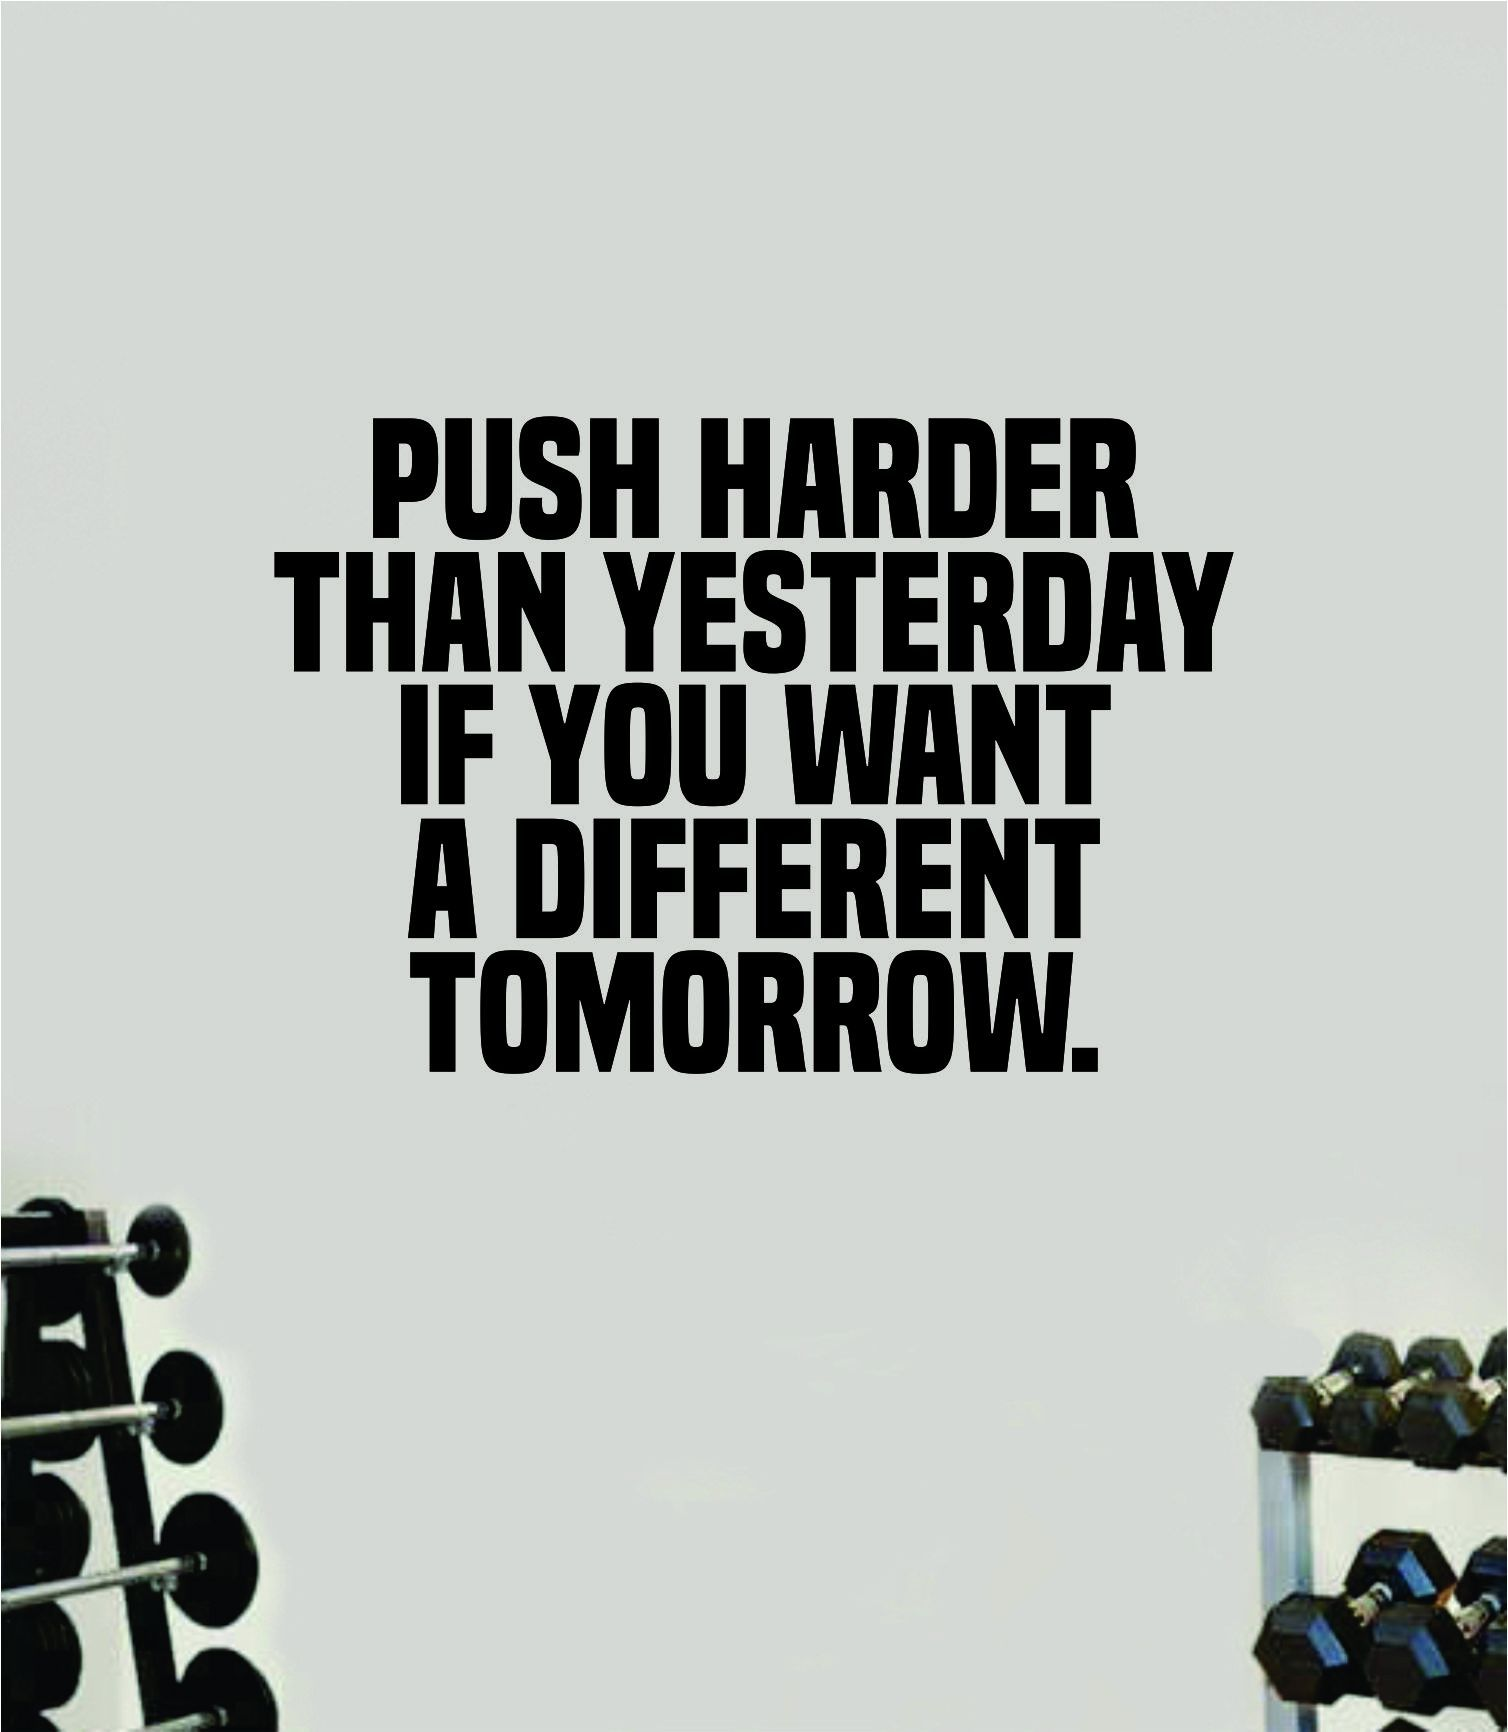 Push Harder than Yesterday V2 Wall Decal Home Decor Bedroom Room Vinyl Sticker Art Teen Work Out Quote Gym Girls Train Fitness Lift Strong Inspirational Motivational Health - saphire blue